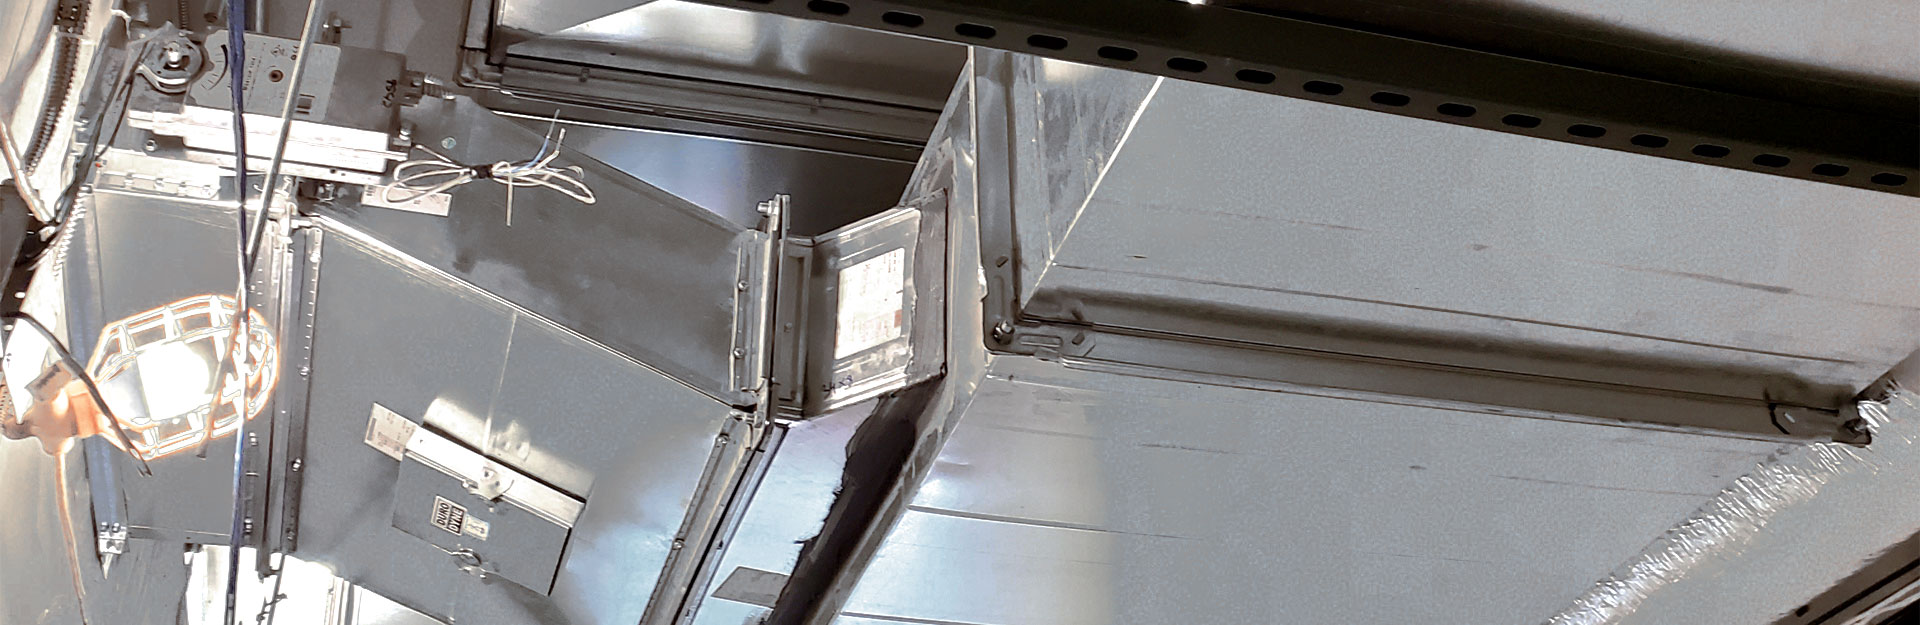 Sheet Metal and Ductwork